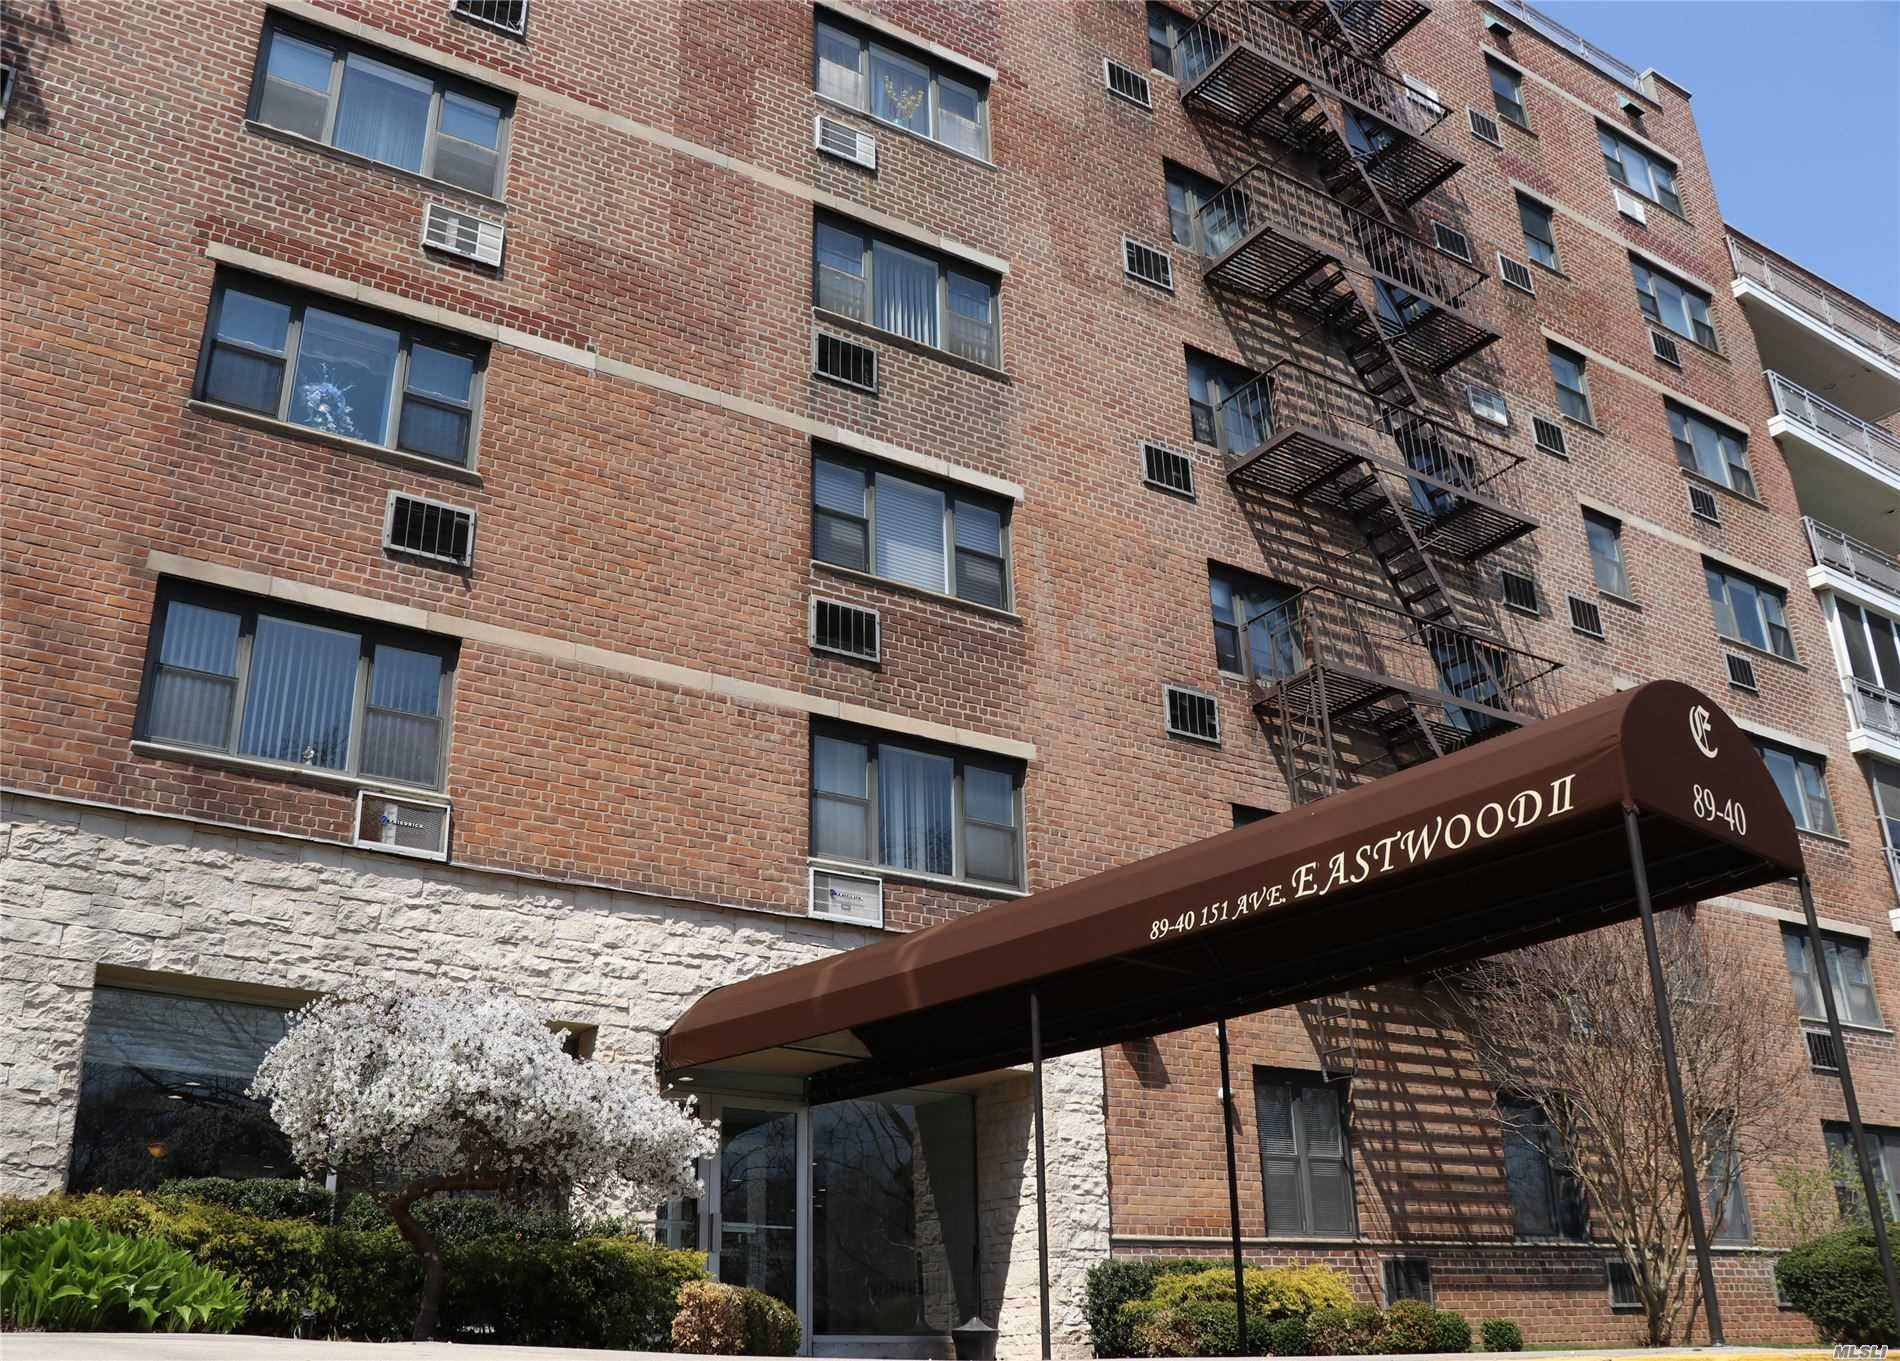 89-40 151st Avenue #1J, Howard Beach, NY 11414 - MLS#: 3241593